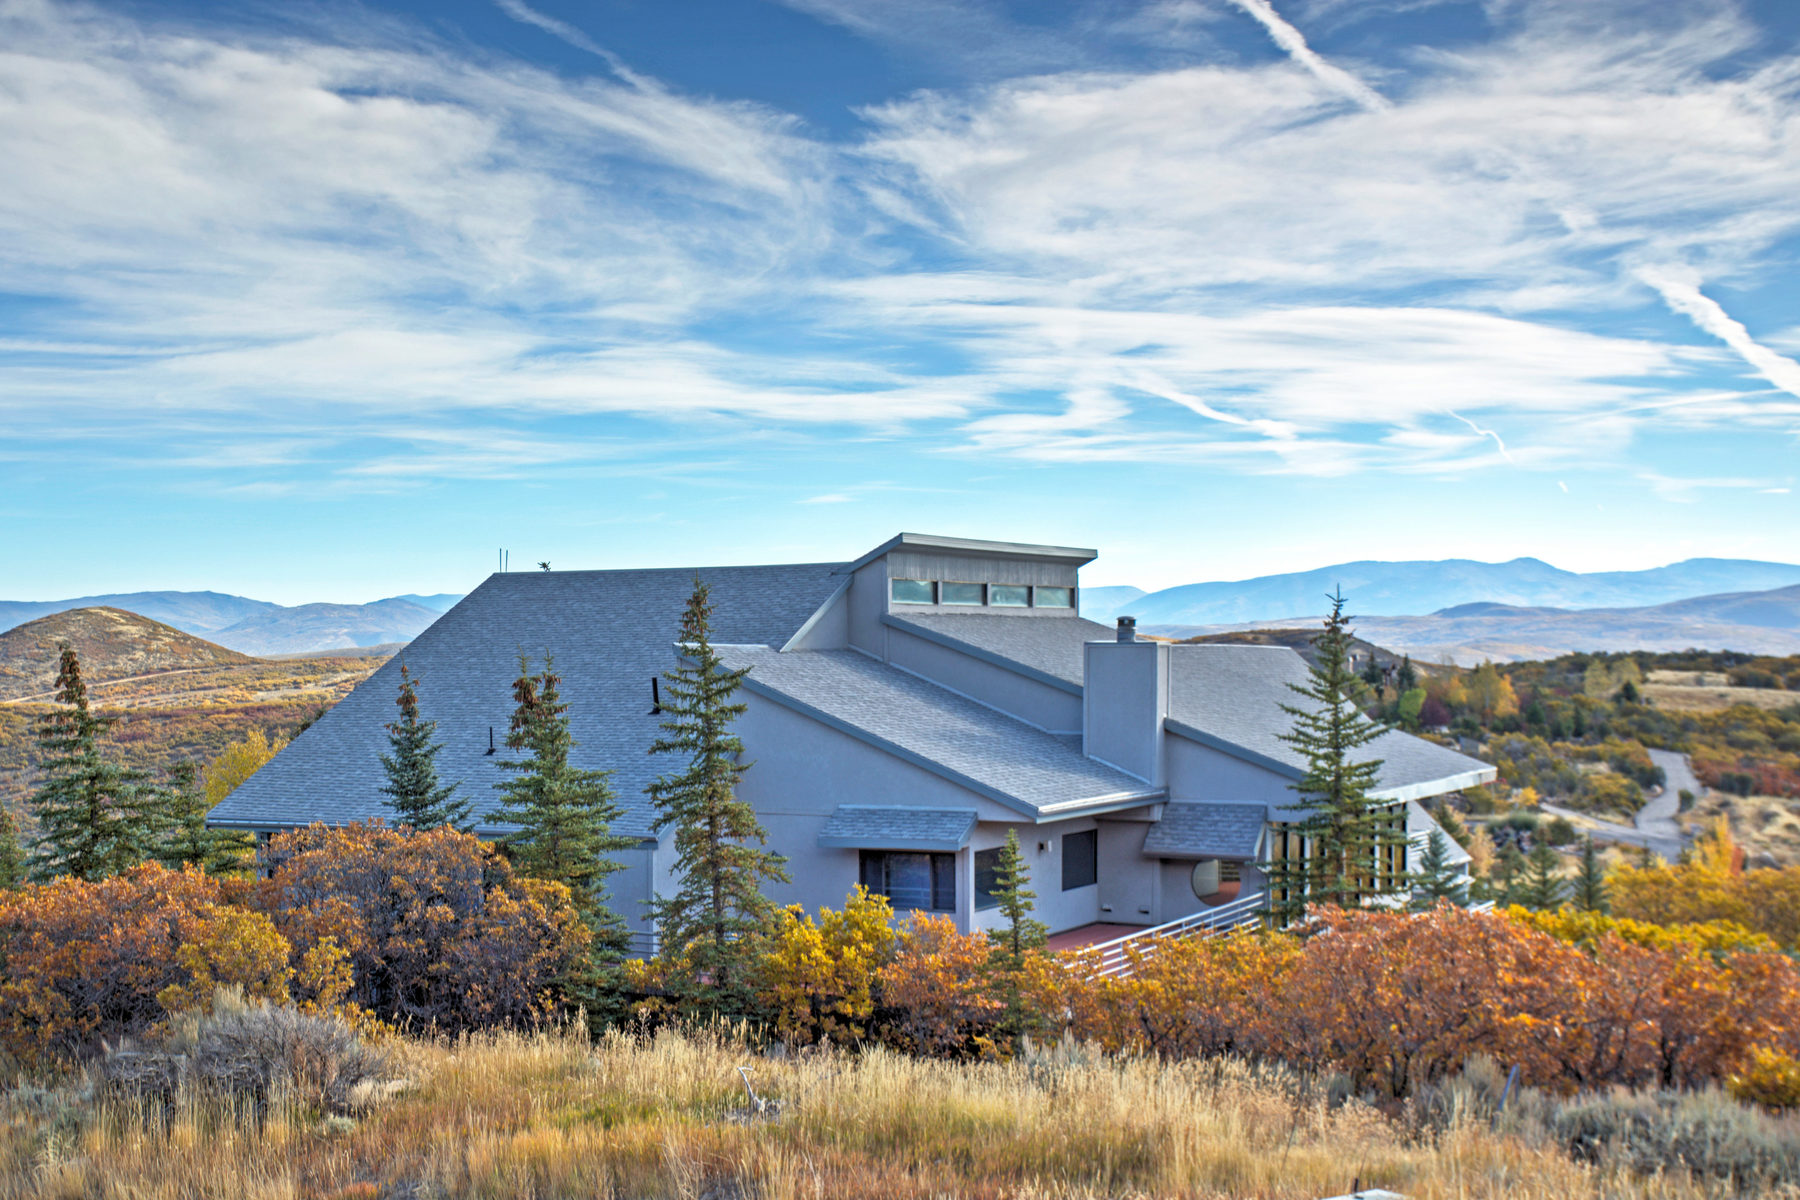 一戸建て のために 売買 アット This Mountaintop Gem is the Perfect Personal or Corporate Retreat 325 Mountain Top Dr Park City, ユタ, 84060 アメリカ合衆国